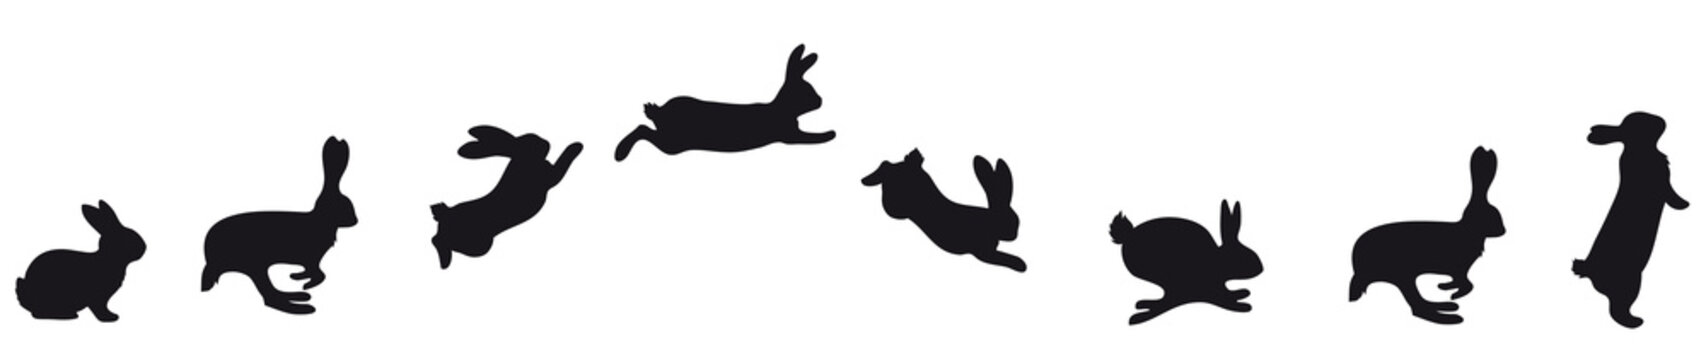 jumping Silhouettes of Easter bunnies black